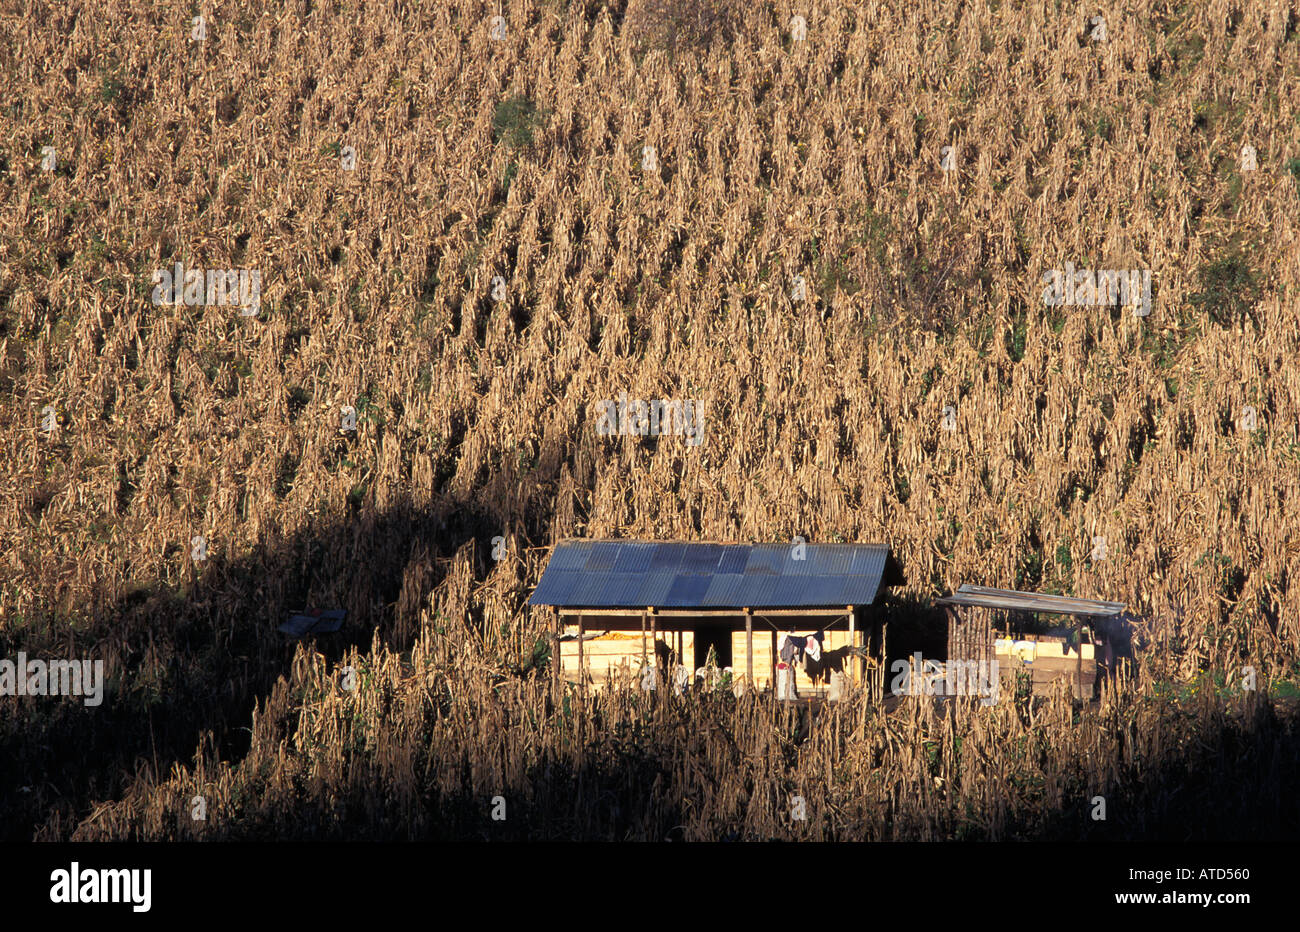 Maya home in the middle of a cornfield Chajul to Nebaj road Ixil Triangle Guatemala A typical scene - Stock Image